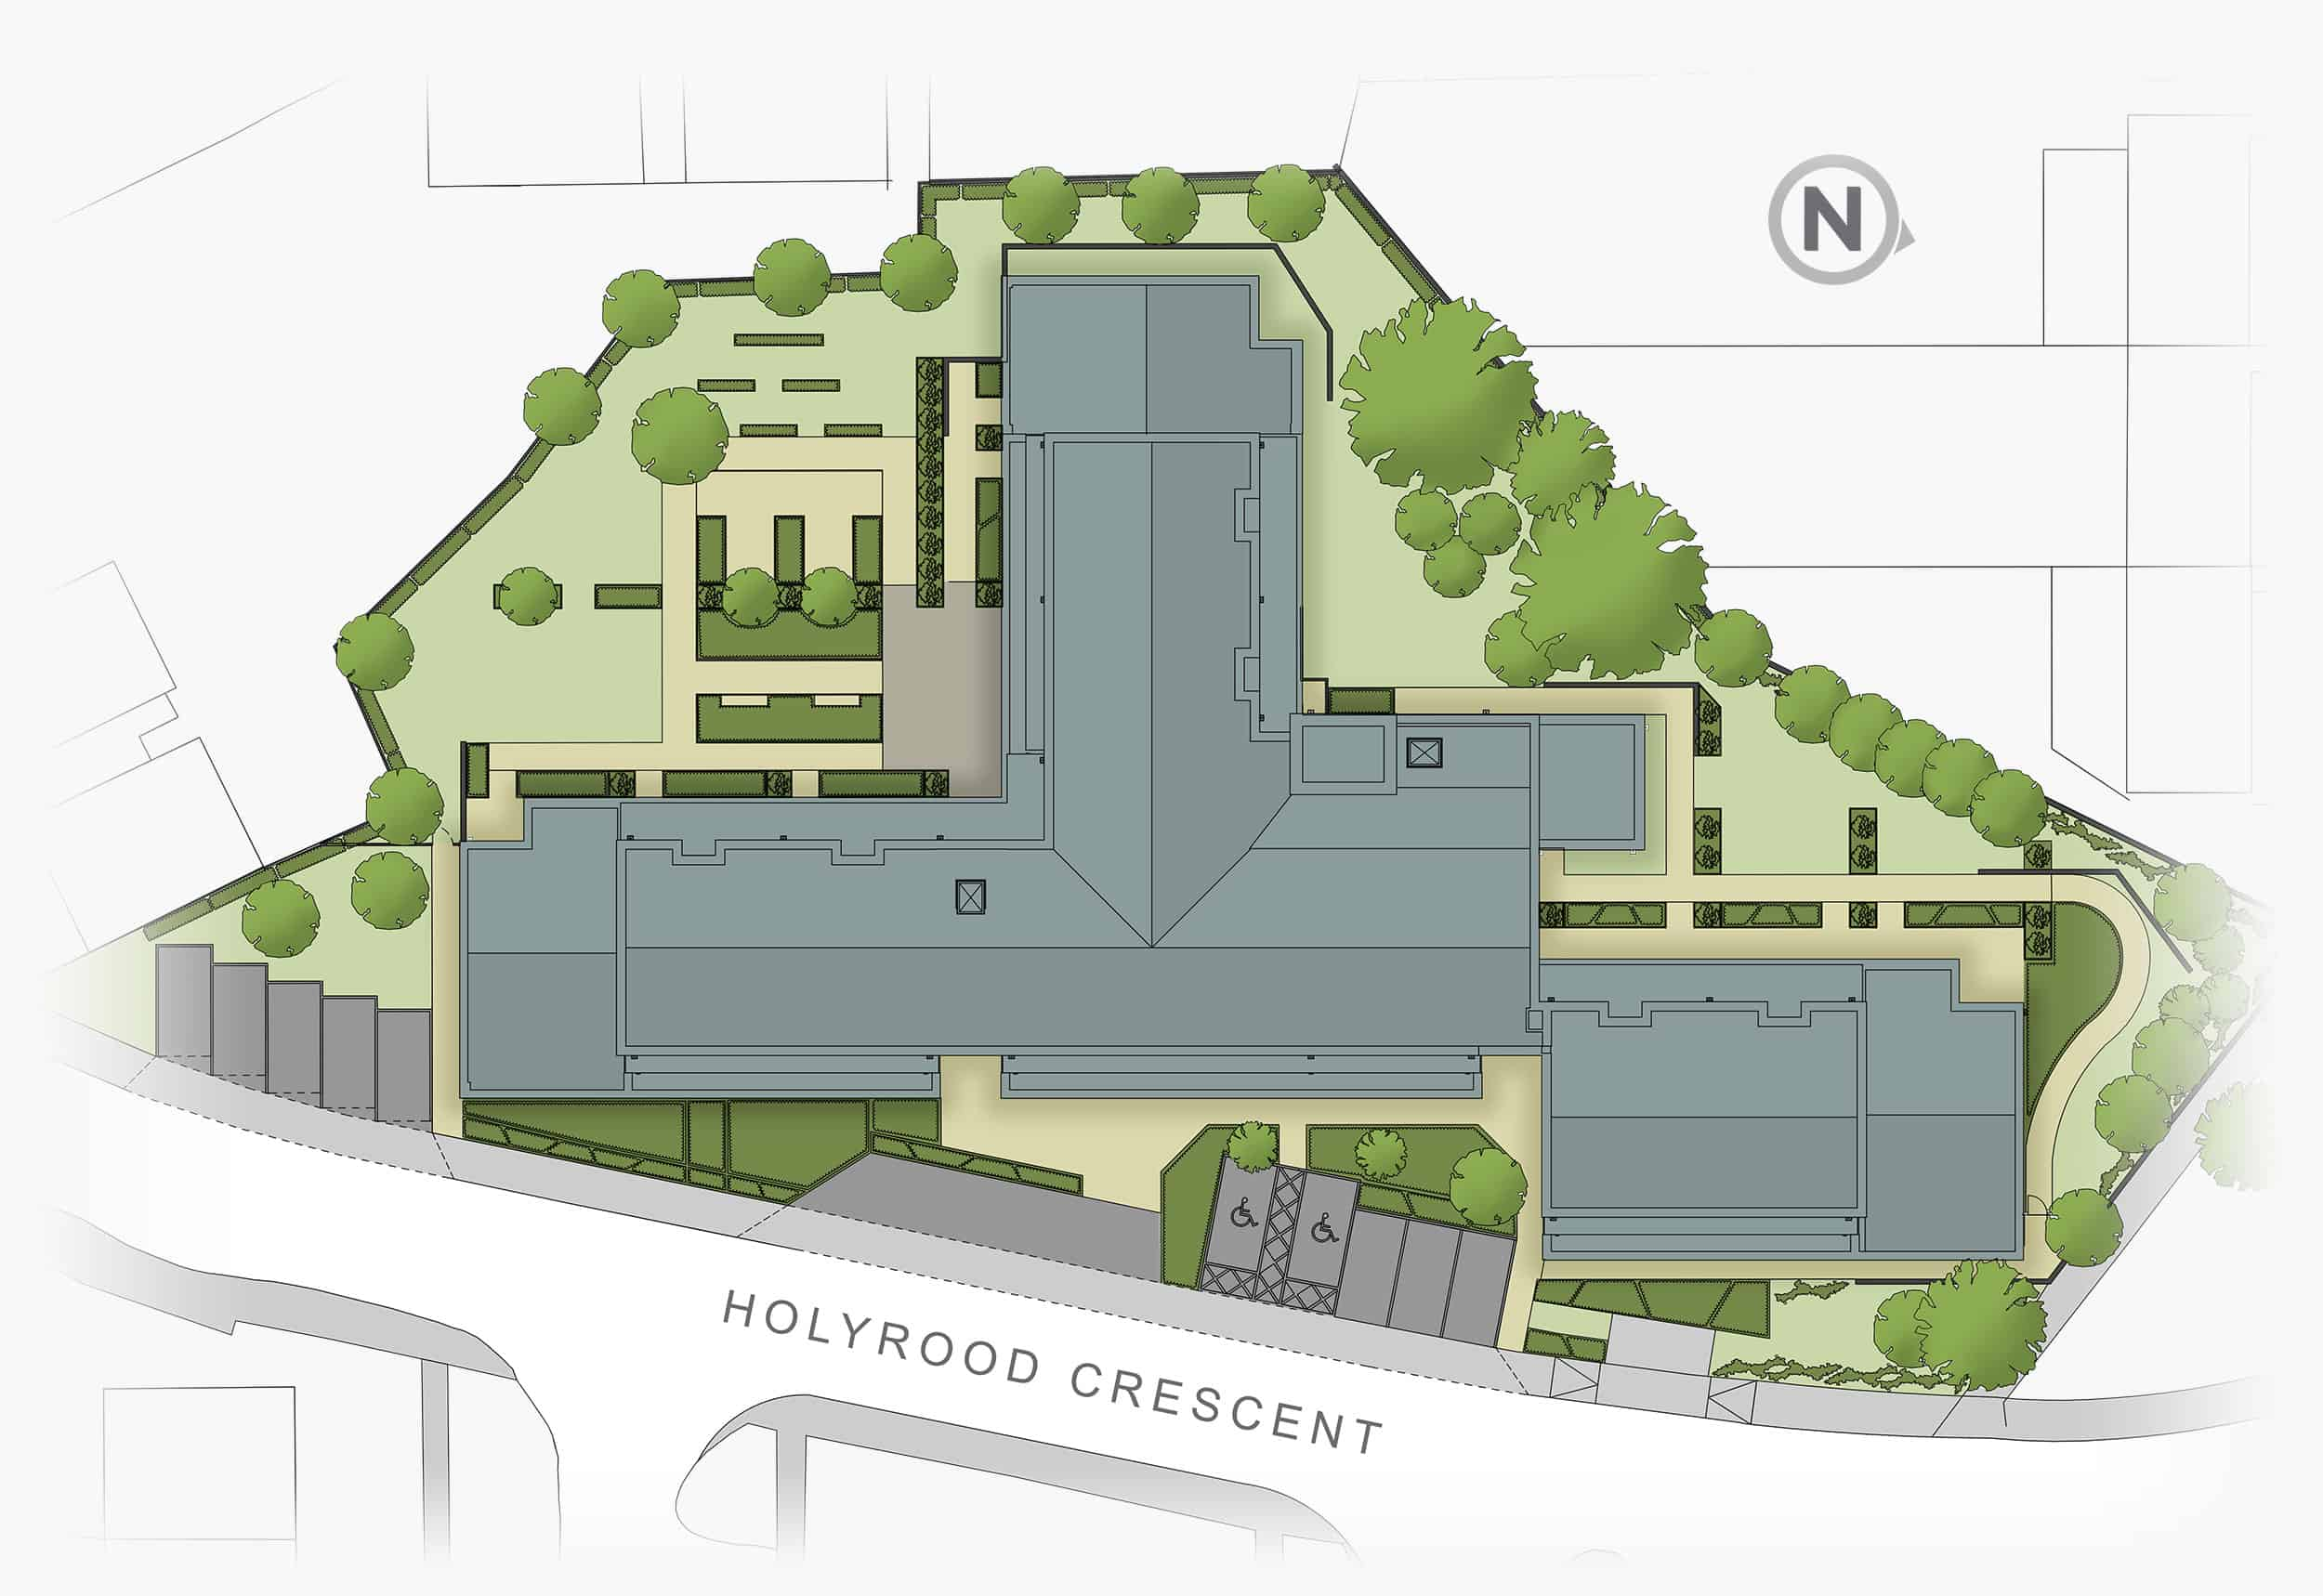 holyrood crescent site plan